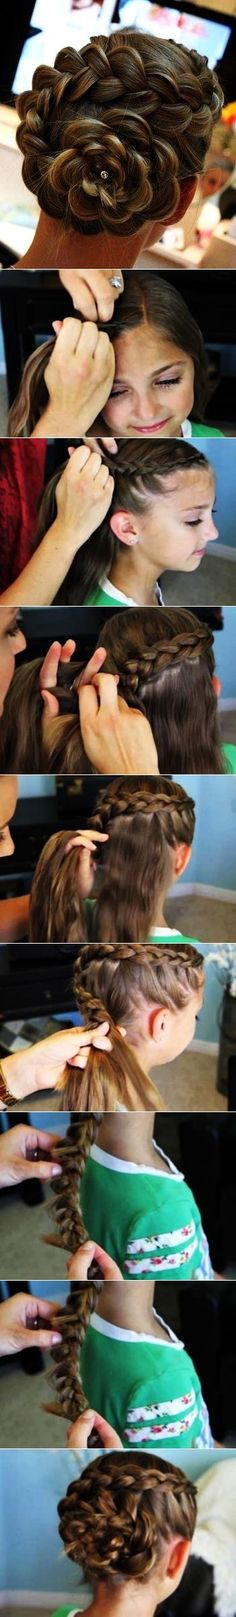 DIY Flower Hair beauty long hair updo braids how to diy hair hairstyles tutorials hair tutorials easy hairstyles The post DIY Flower Hair beauty long hair updo braids how to diy hair hairstyles tutorial appeared first on Hair Styles. Hairstyles Haircuts, Pretty Hairstyles, Braided Hairstyles, Wedding Hairstyles, Latest Hairstyles, Braided Updo, Lehenga Hairstyles, Natural Hairstyles, Hairstyle Ideas